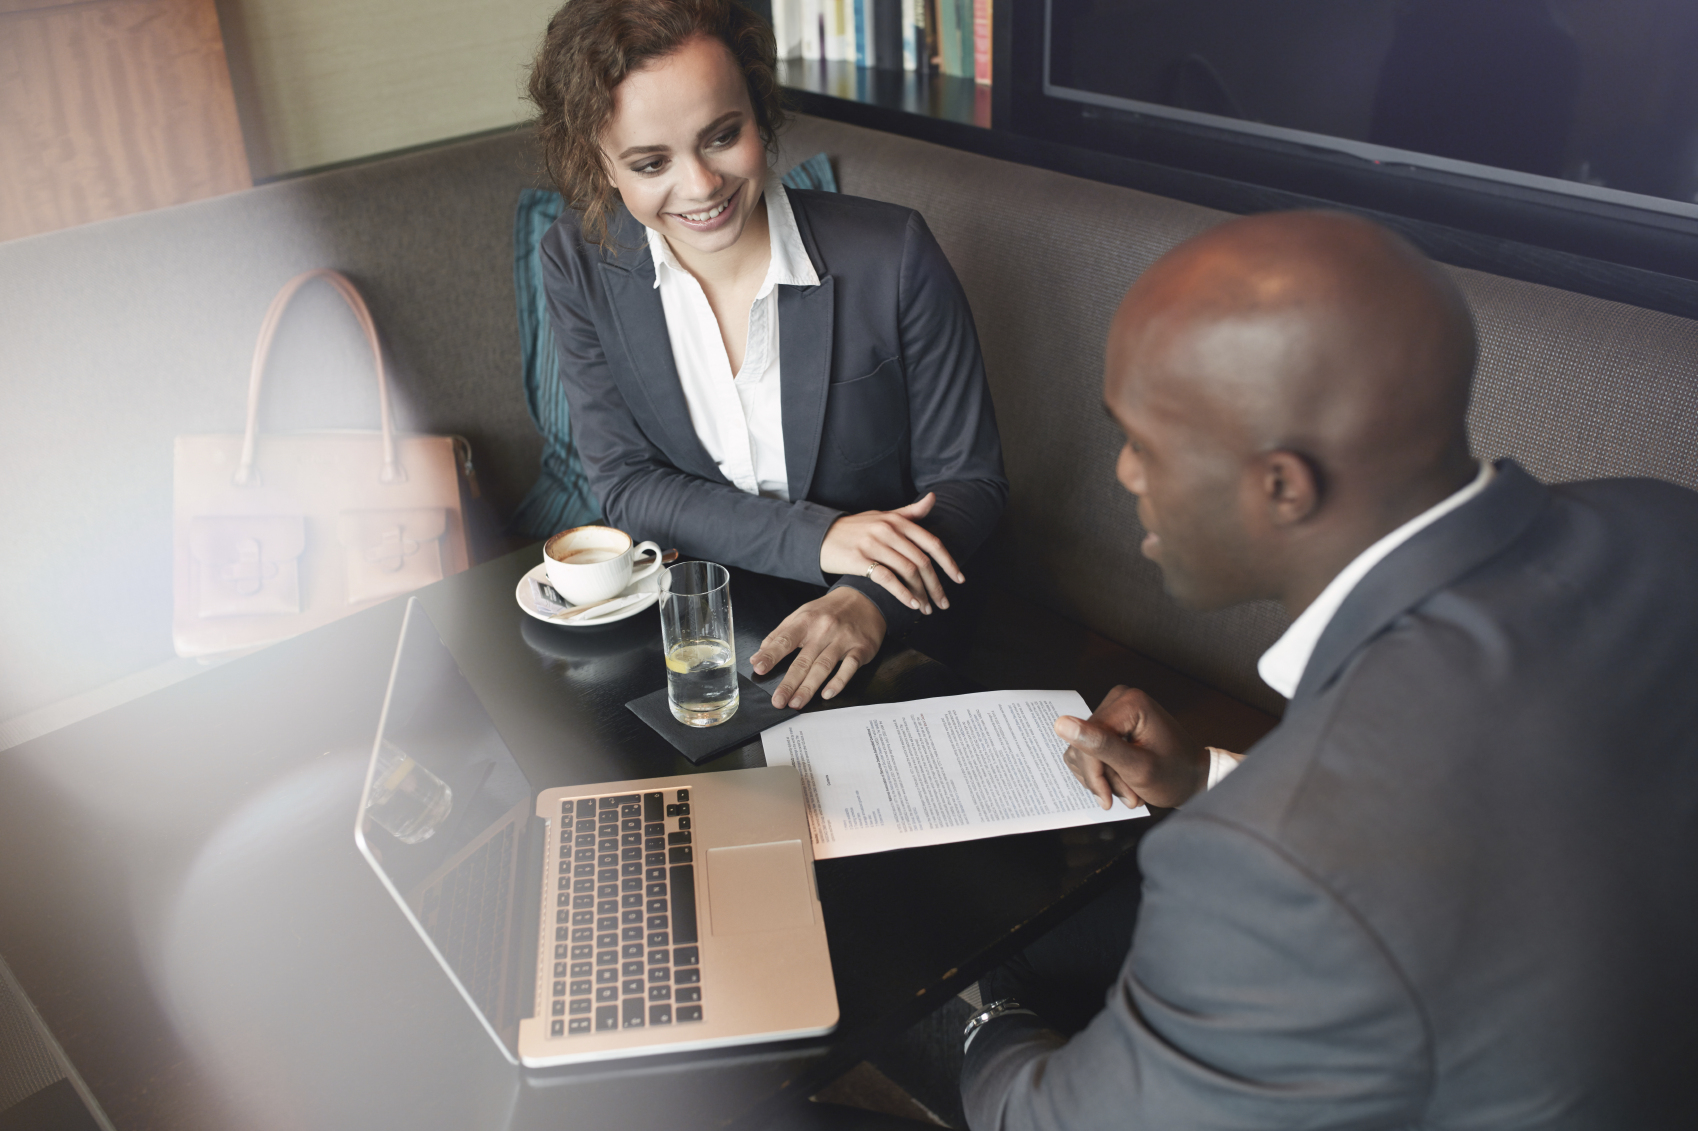 Stock Photo of a business meeting